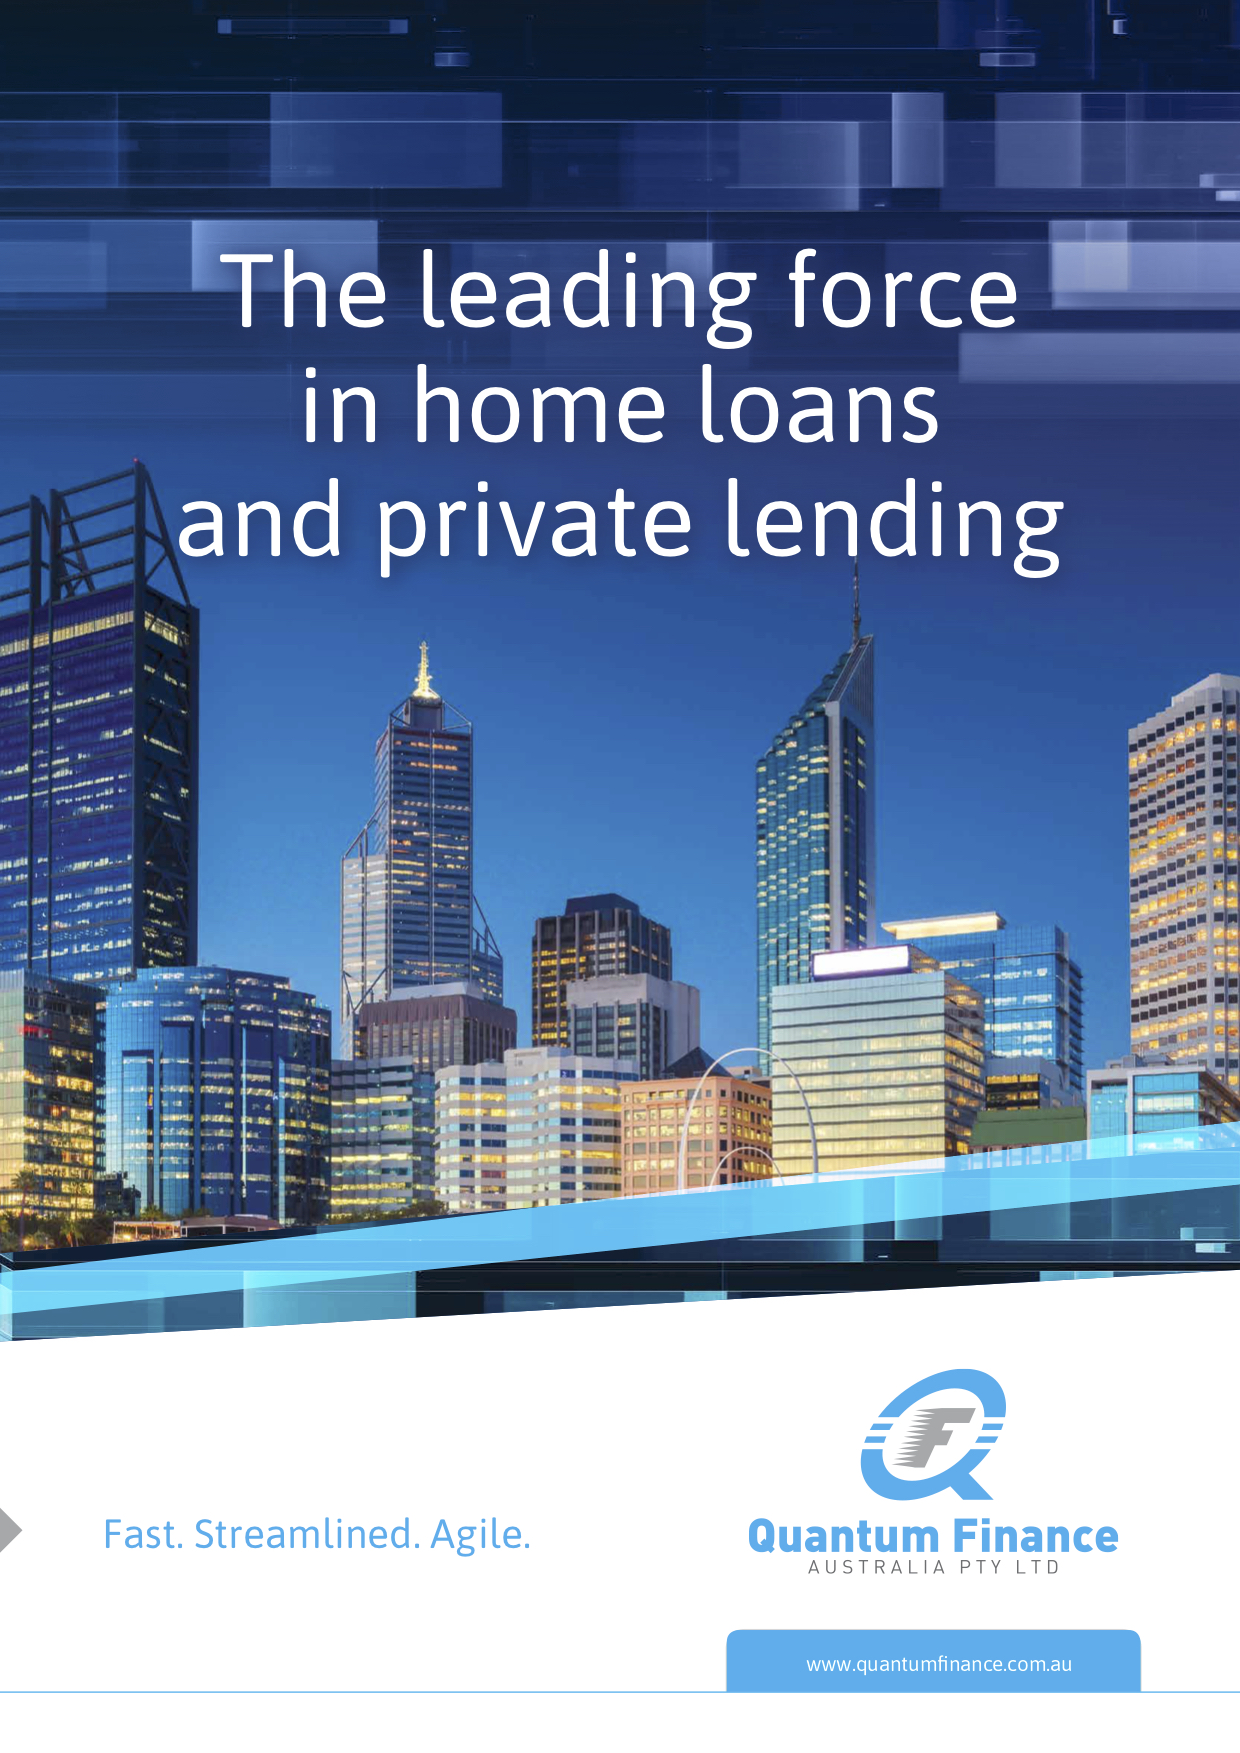 The Quantum Finance Australia Company Profile for facilitating home finance and private lending solutions